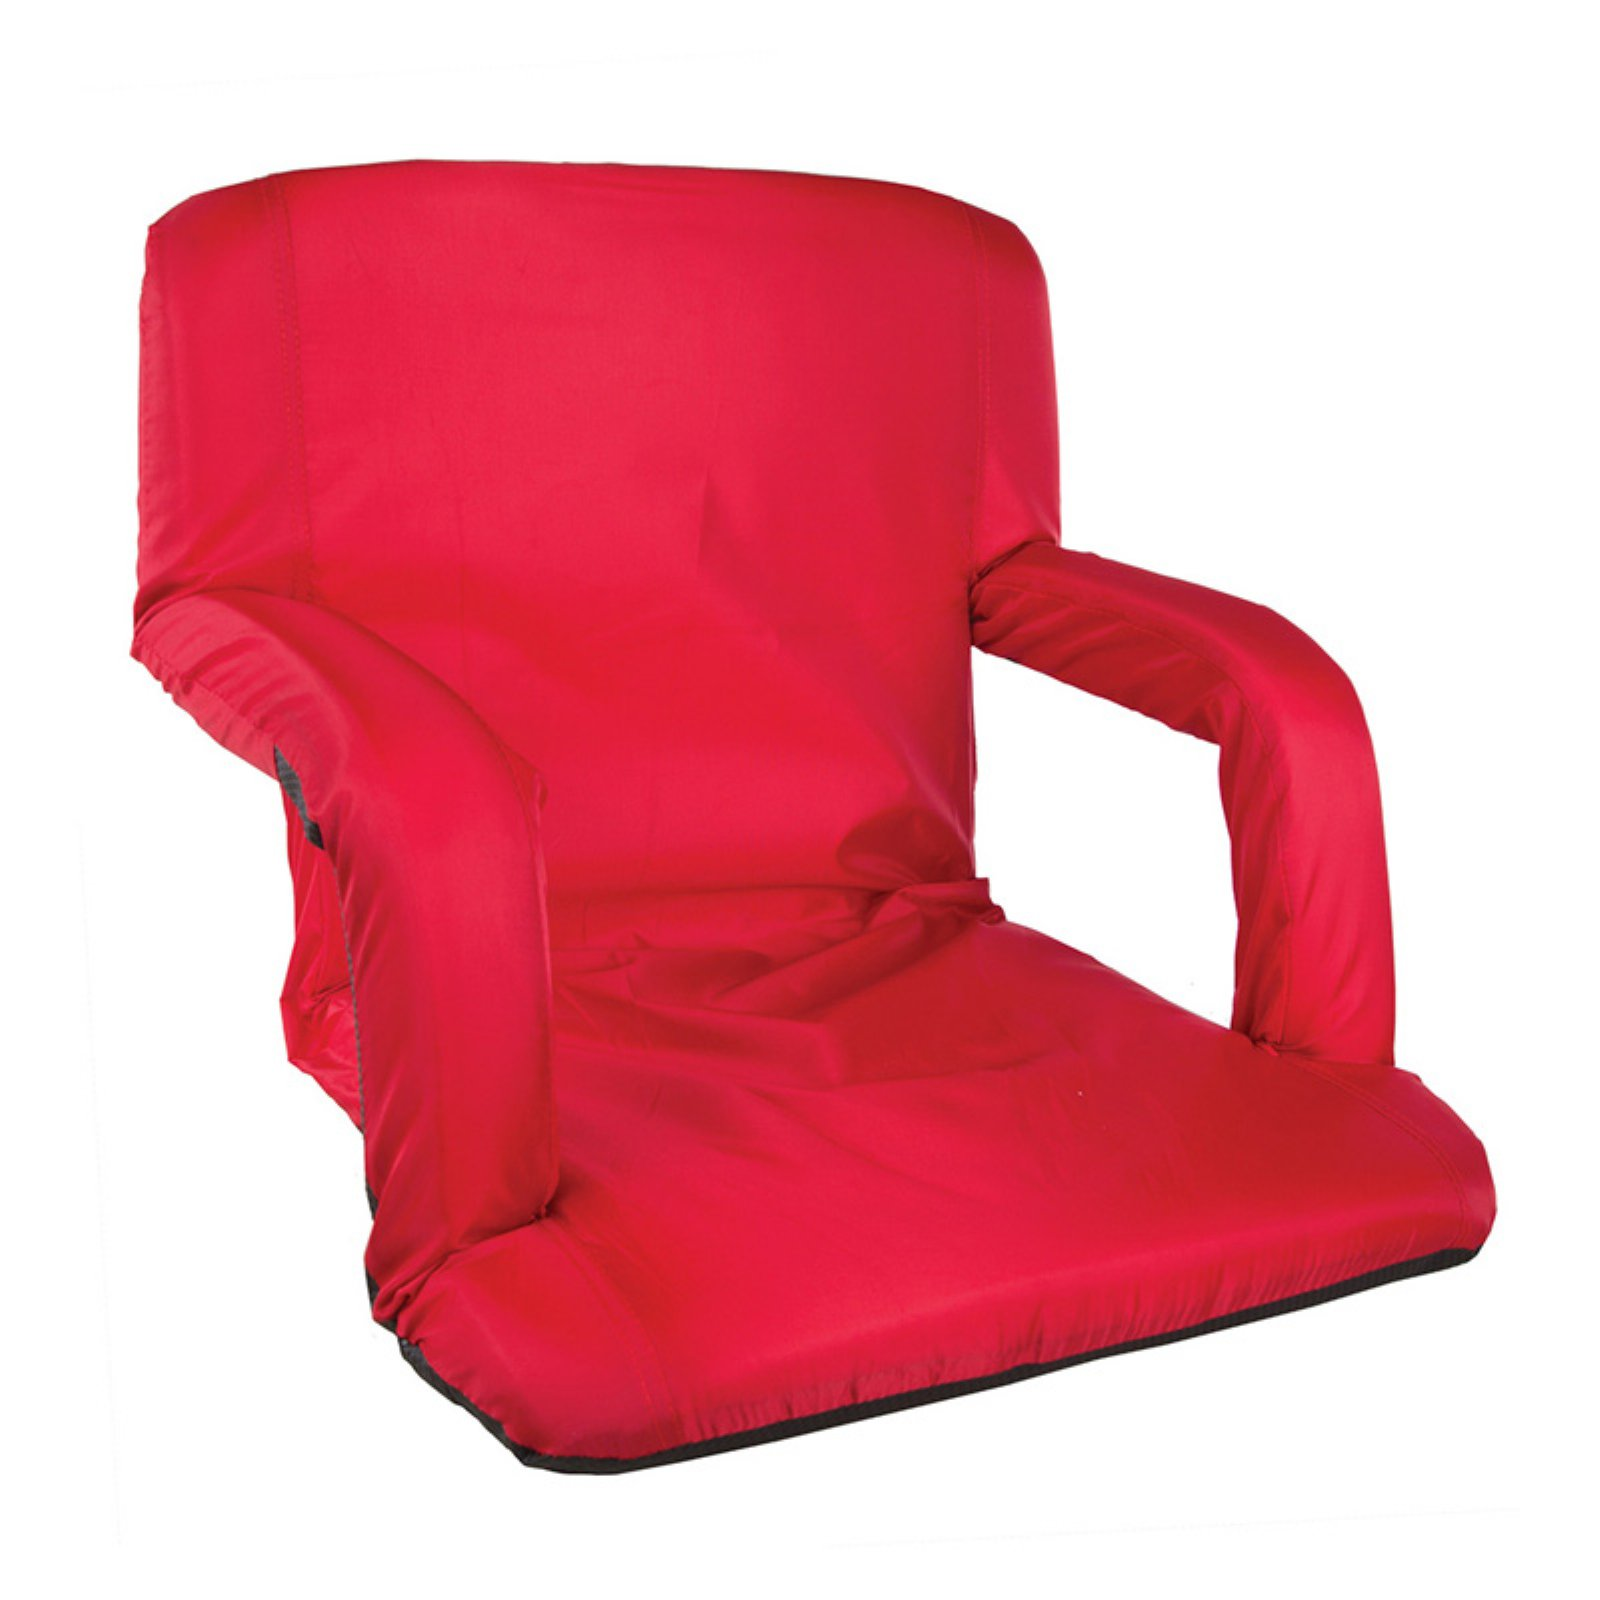 Stansport Multi Fold Padded Arm Chair